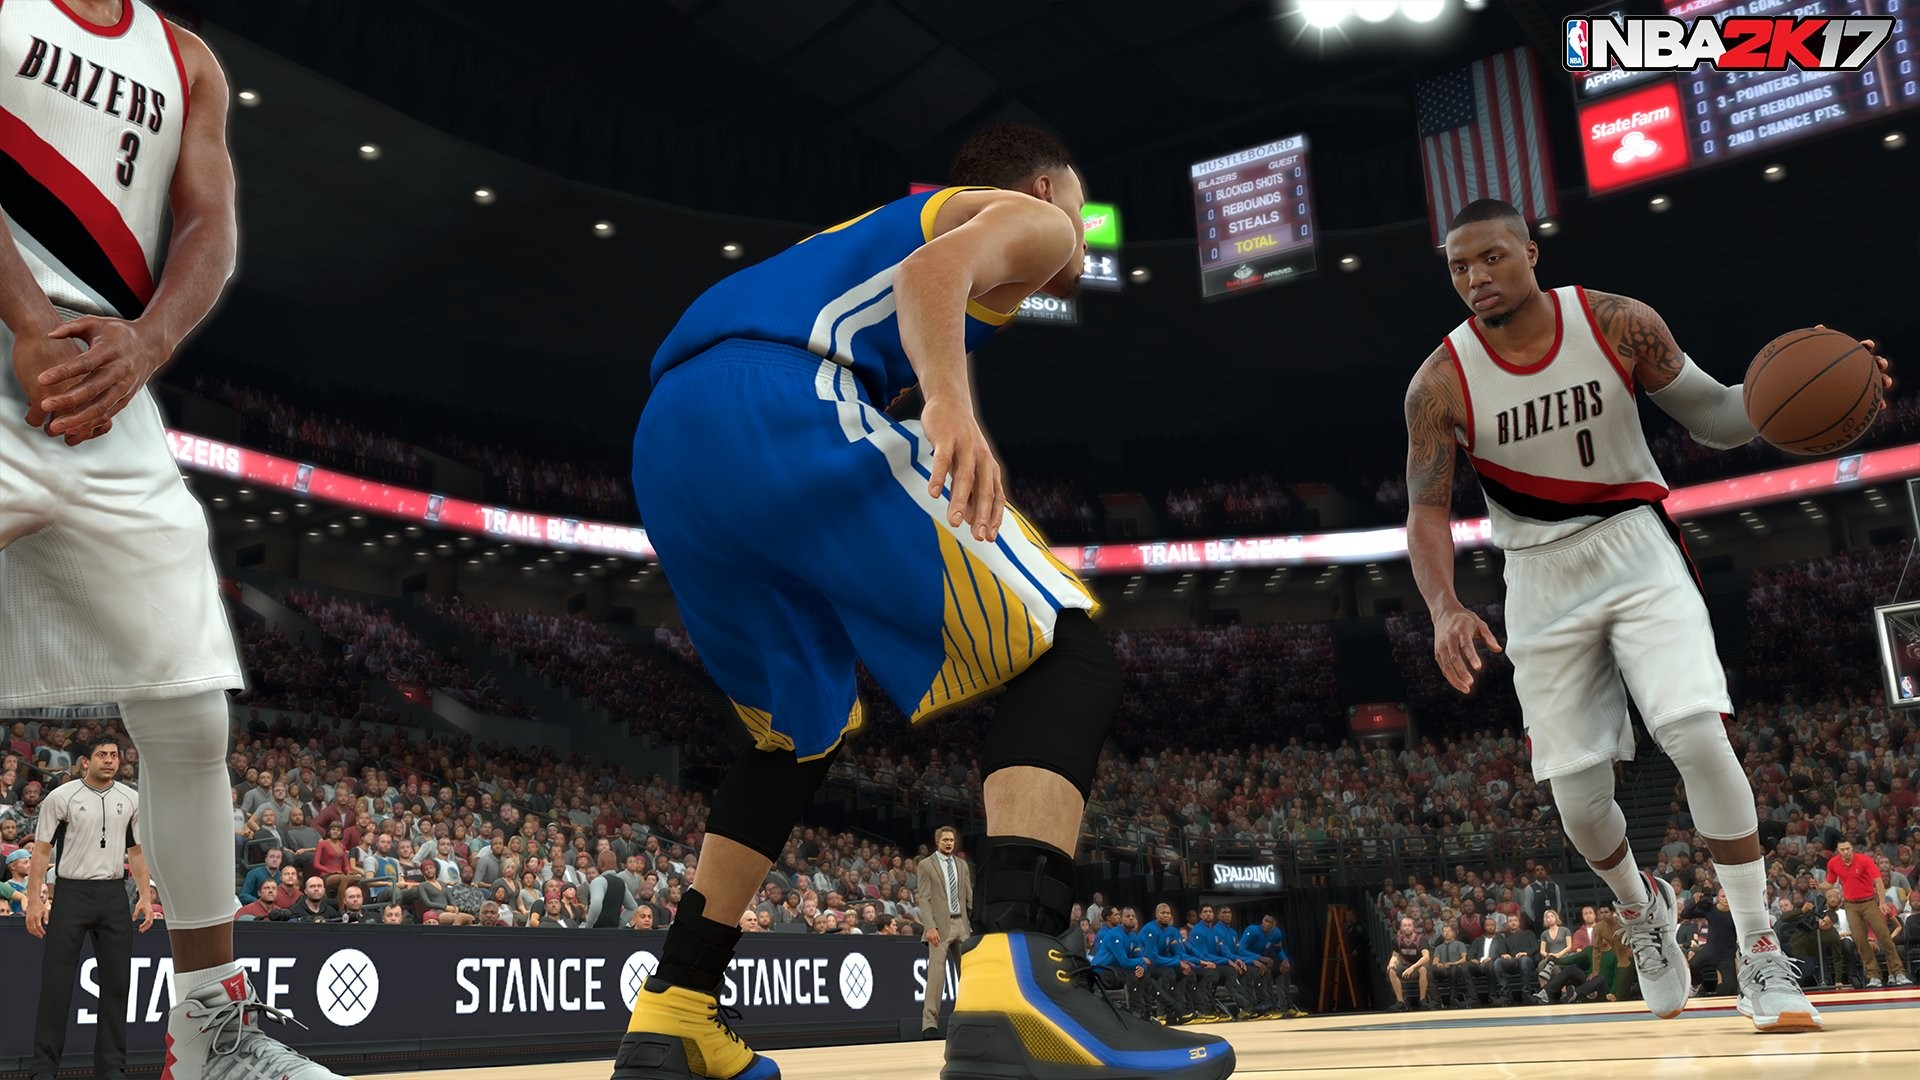 NBA 2K17 Patch 1.07 Available Now For PS4, No Patch Notes Yet…